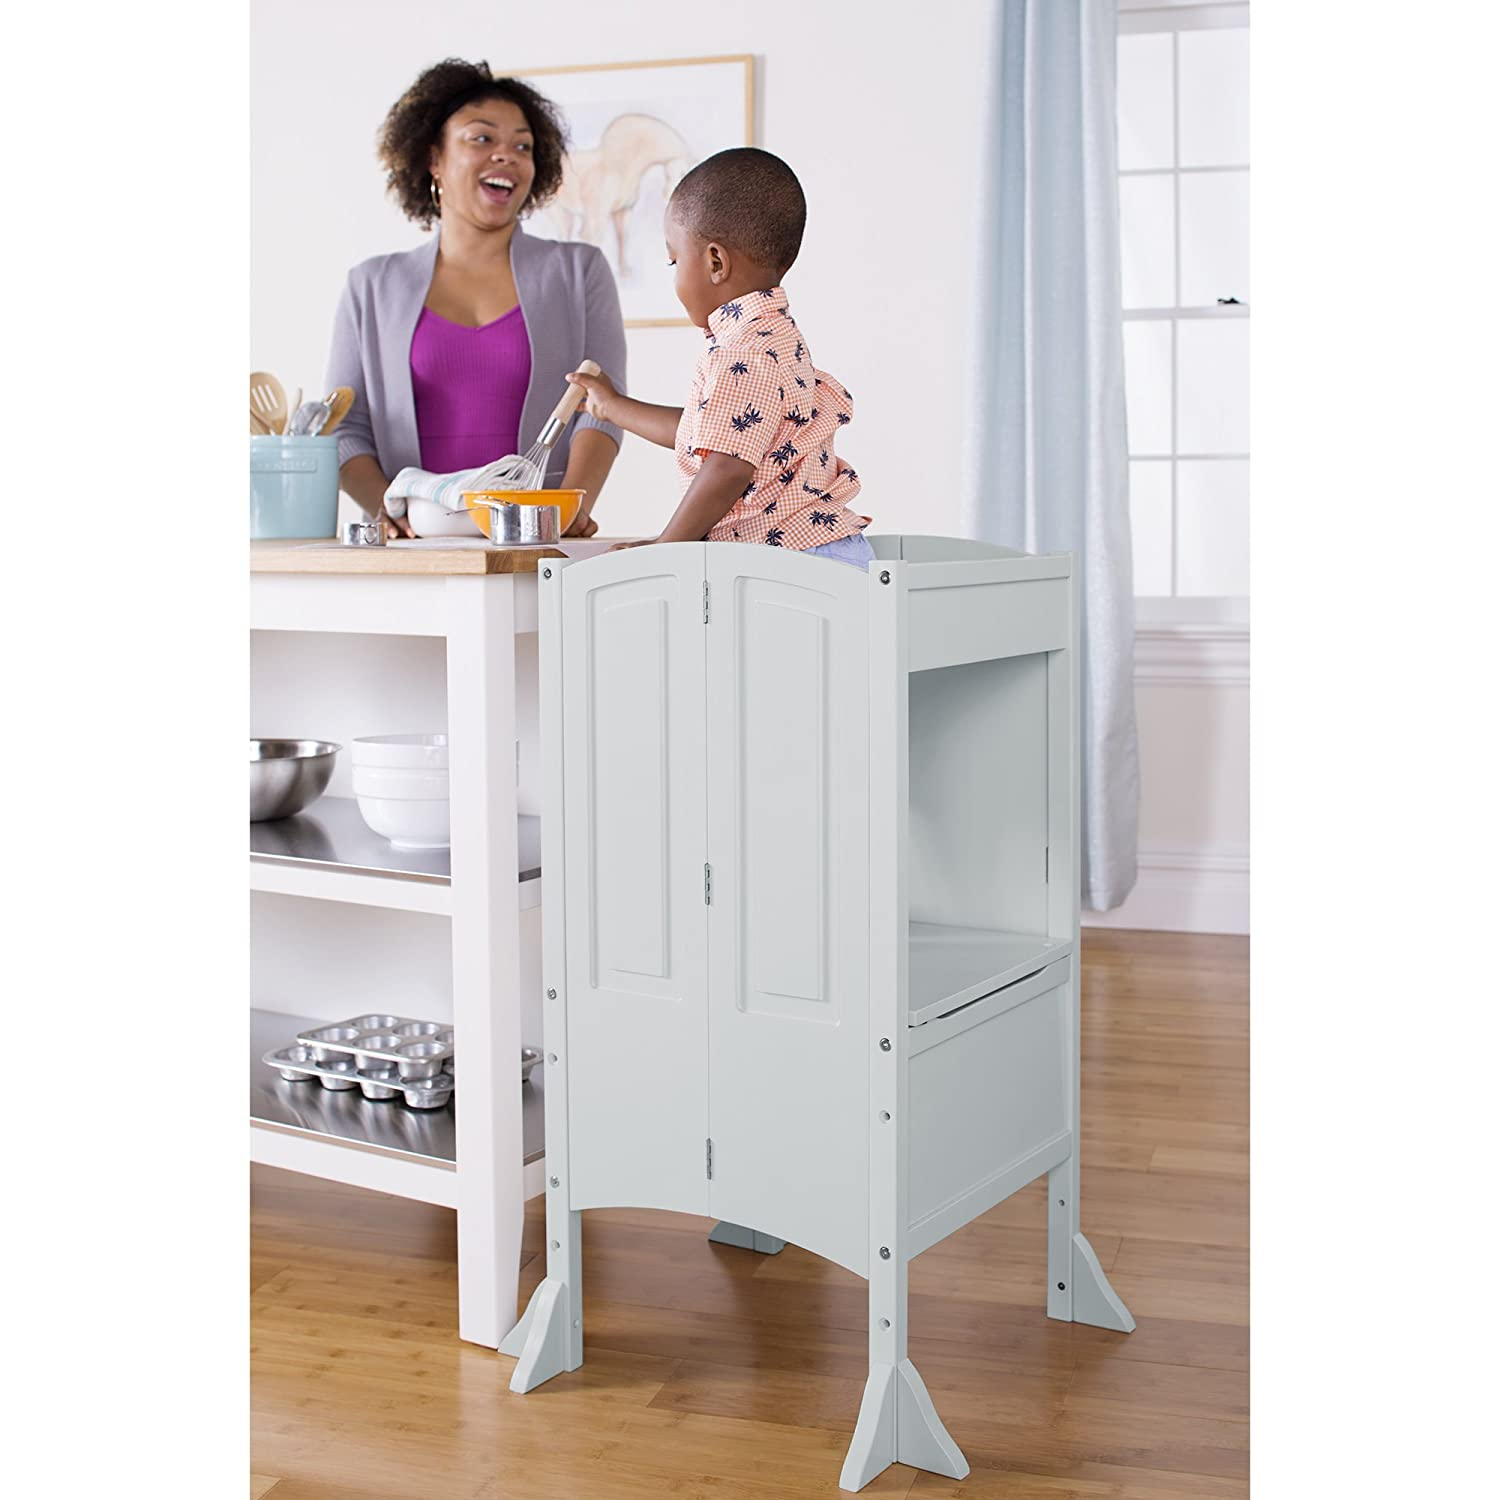 Guidecraft Heartwood Kitchen Helper Stool - White: Little Kids Wooden Kitchen Furniture, Adjustable Height Counter Learning Step Stool for Toddlers, Children Safety Tower - Limited Edition G97403